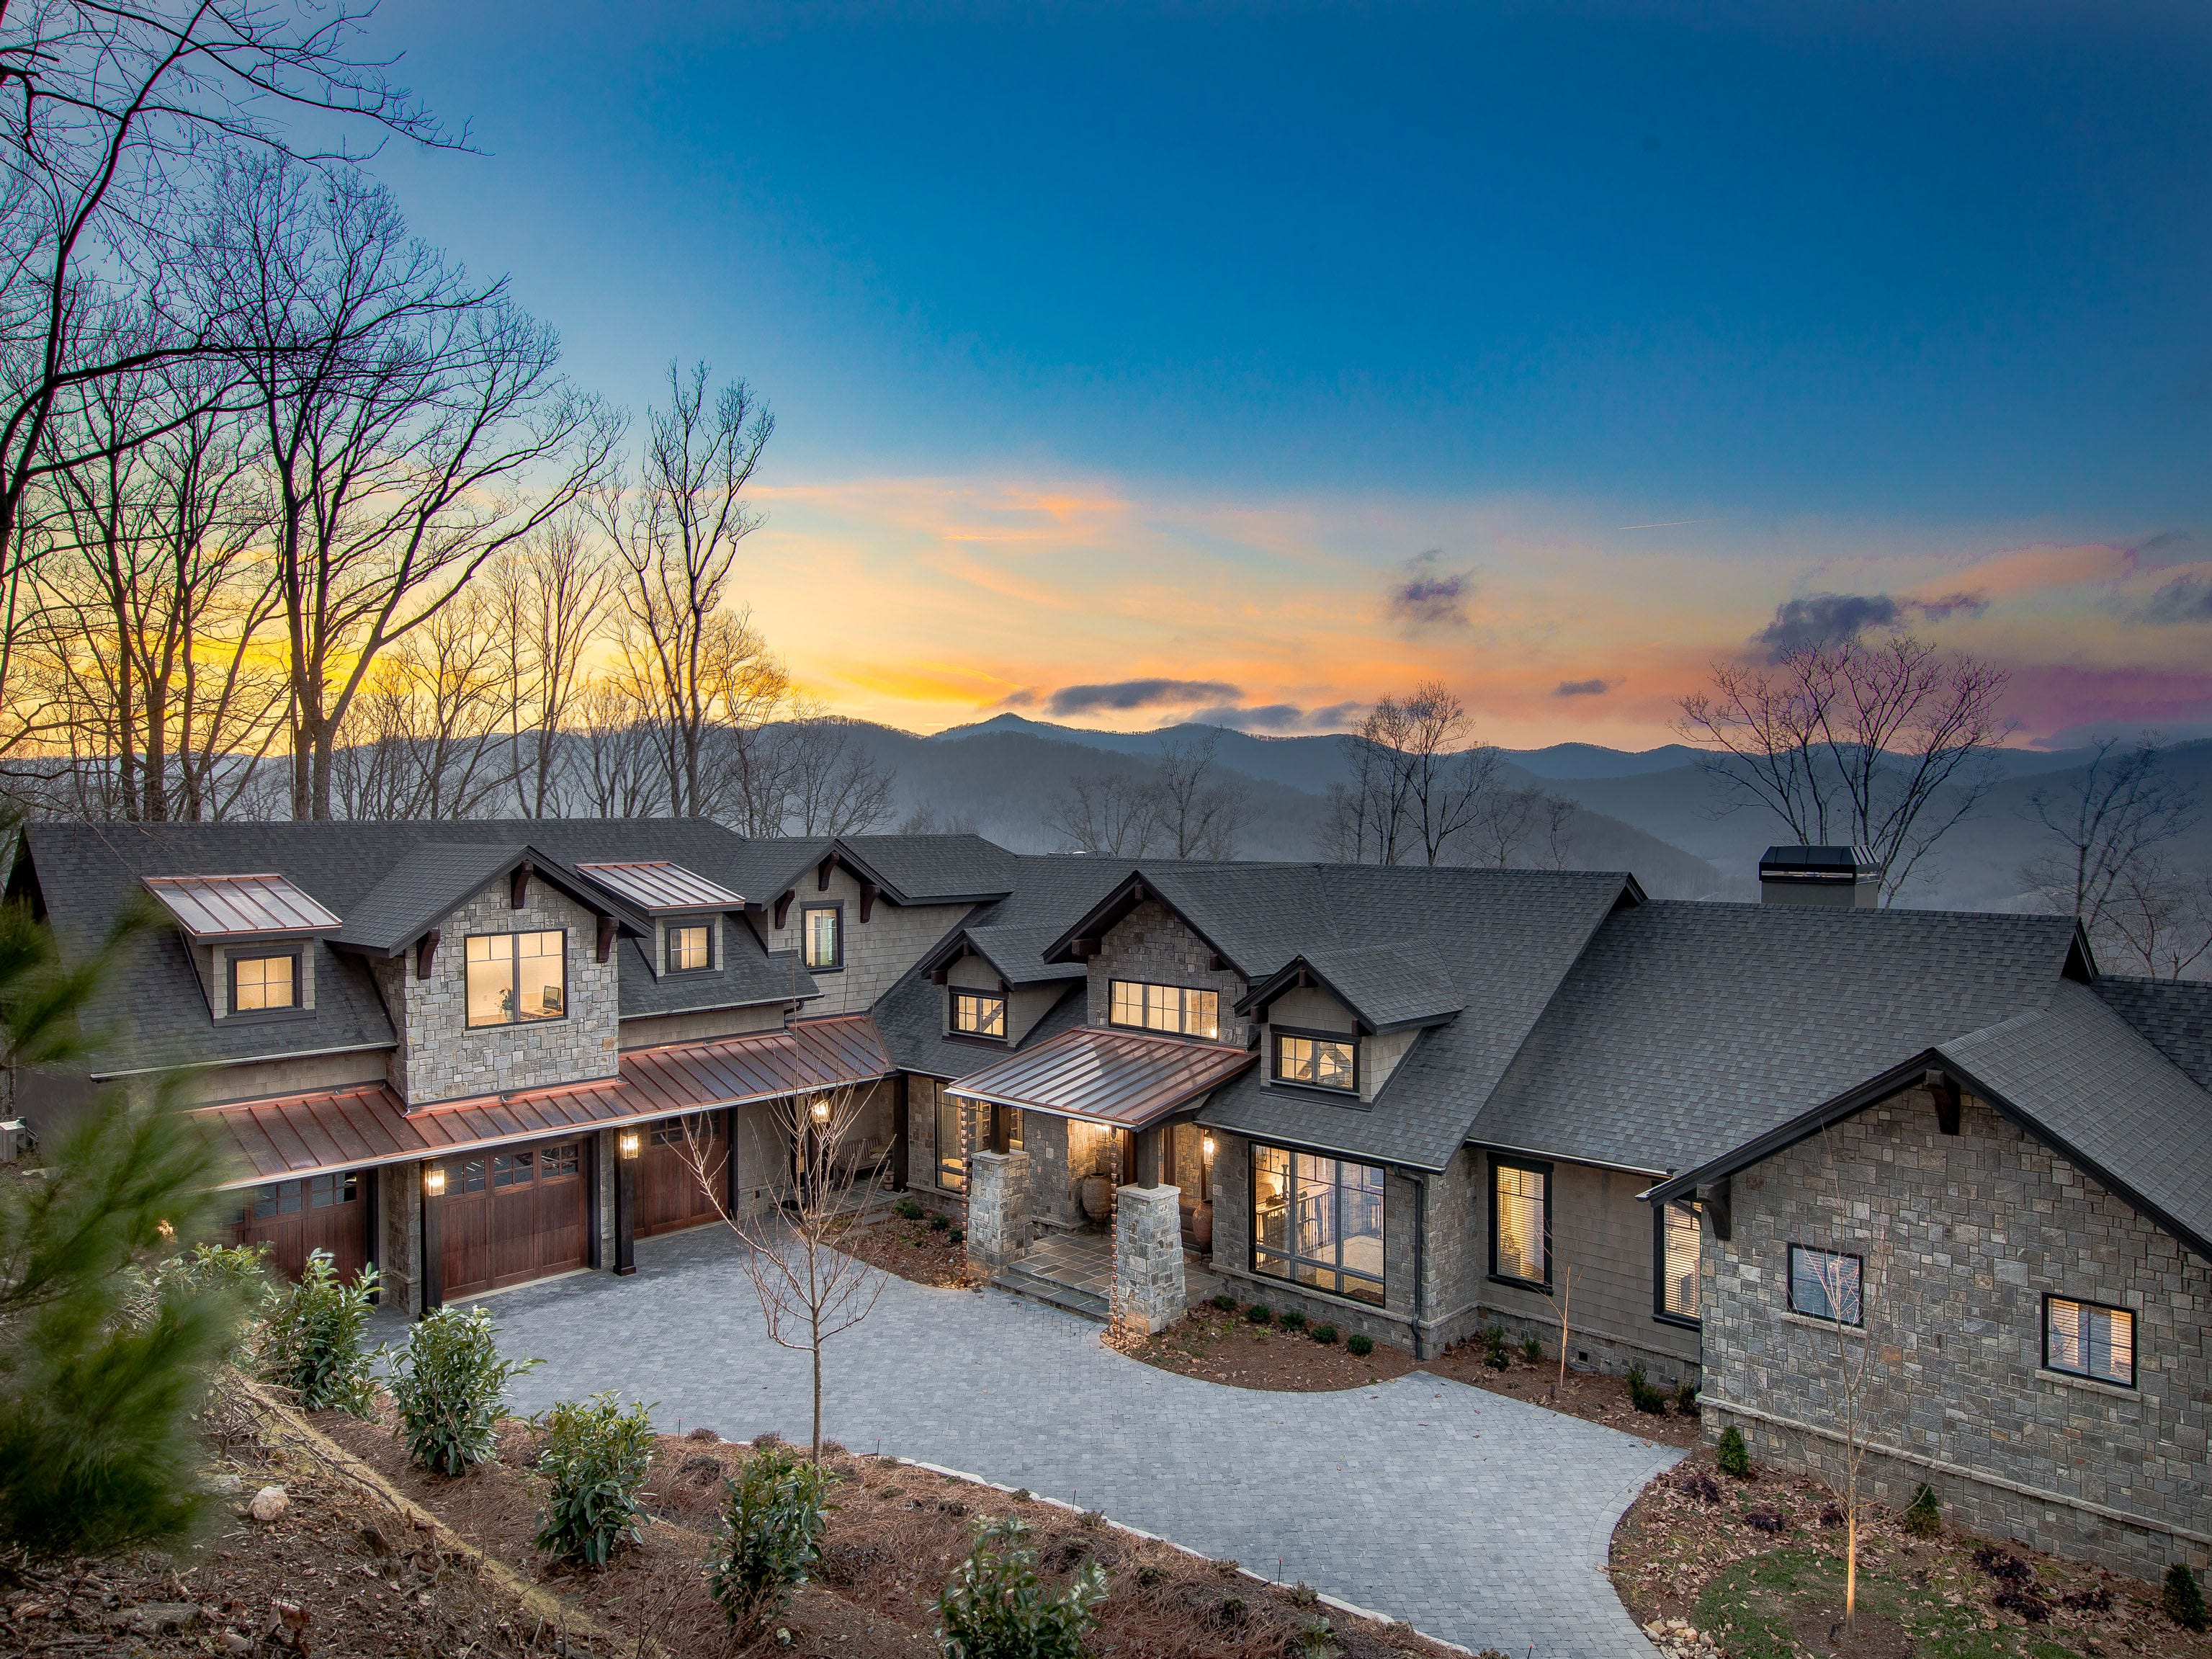 This home on Deer Grass Court in the Cliffs at Walnut Cove sold in March 2019 for $3.5 million, the second most expensive sale in the community's history. At 8,100 square feet, it has five bedrooms and 5.5 bathrooms.